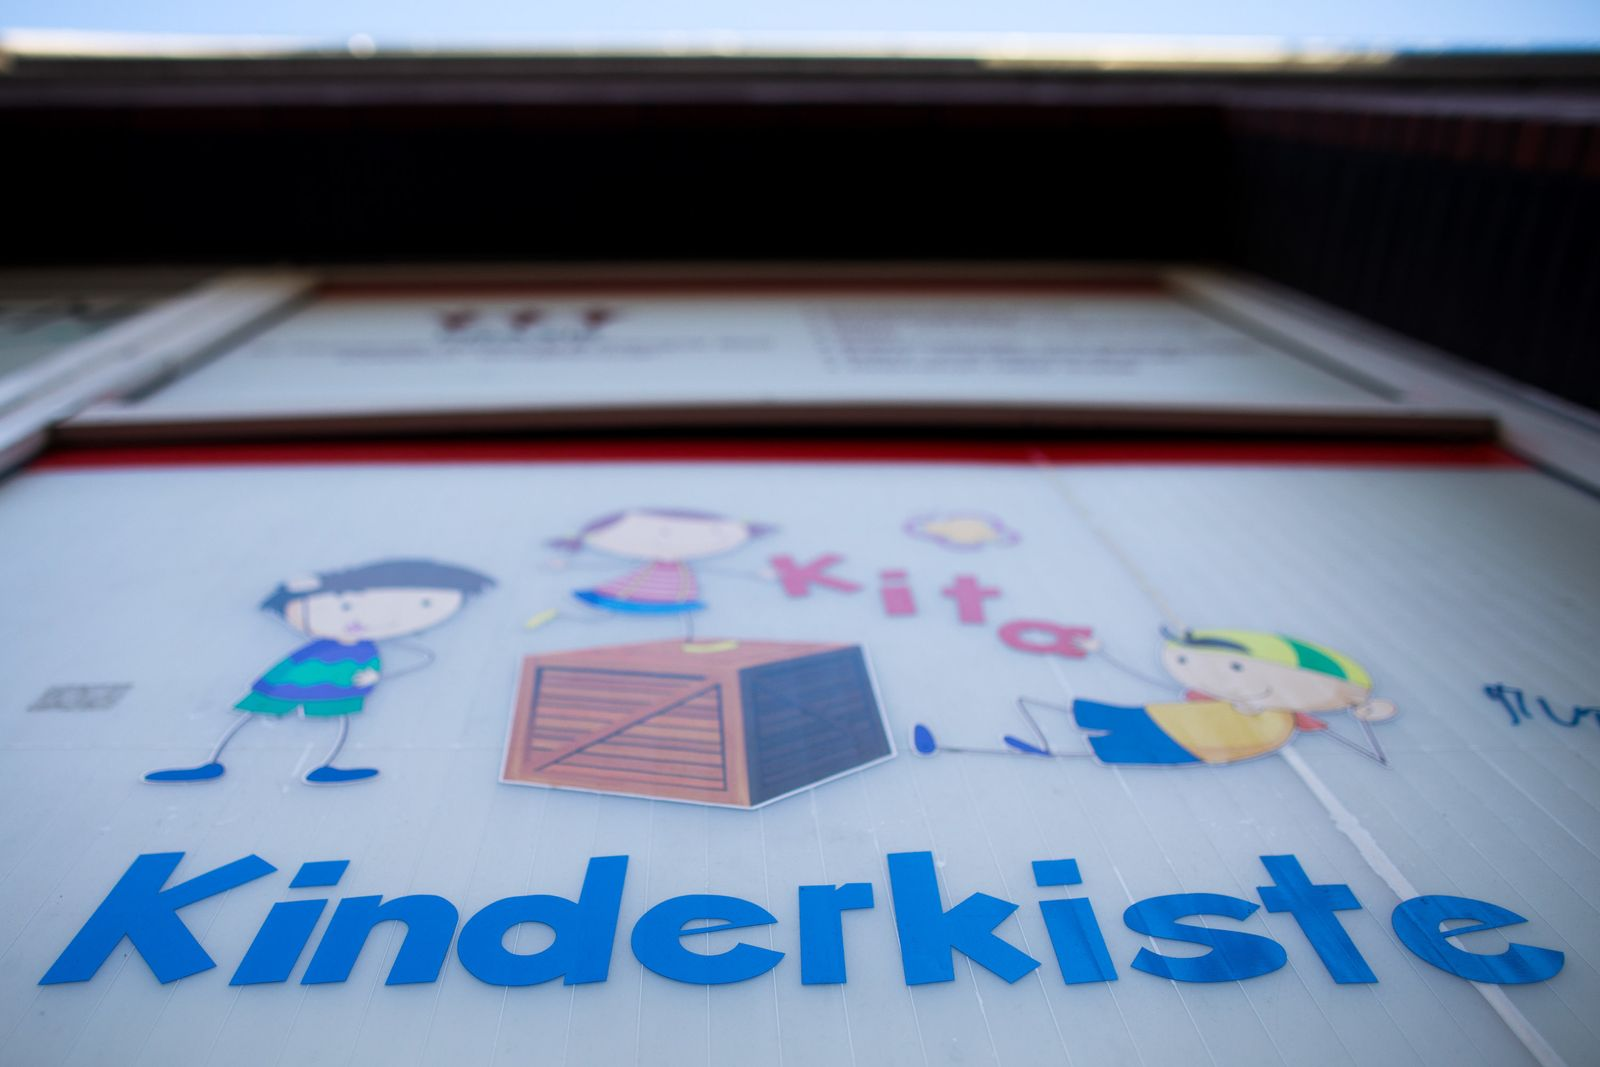 Kinderkiste in Essen Kita